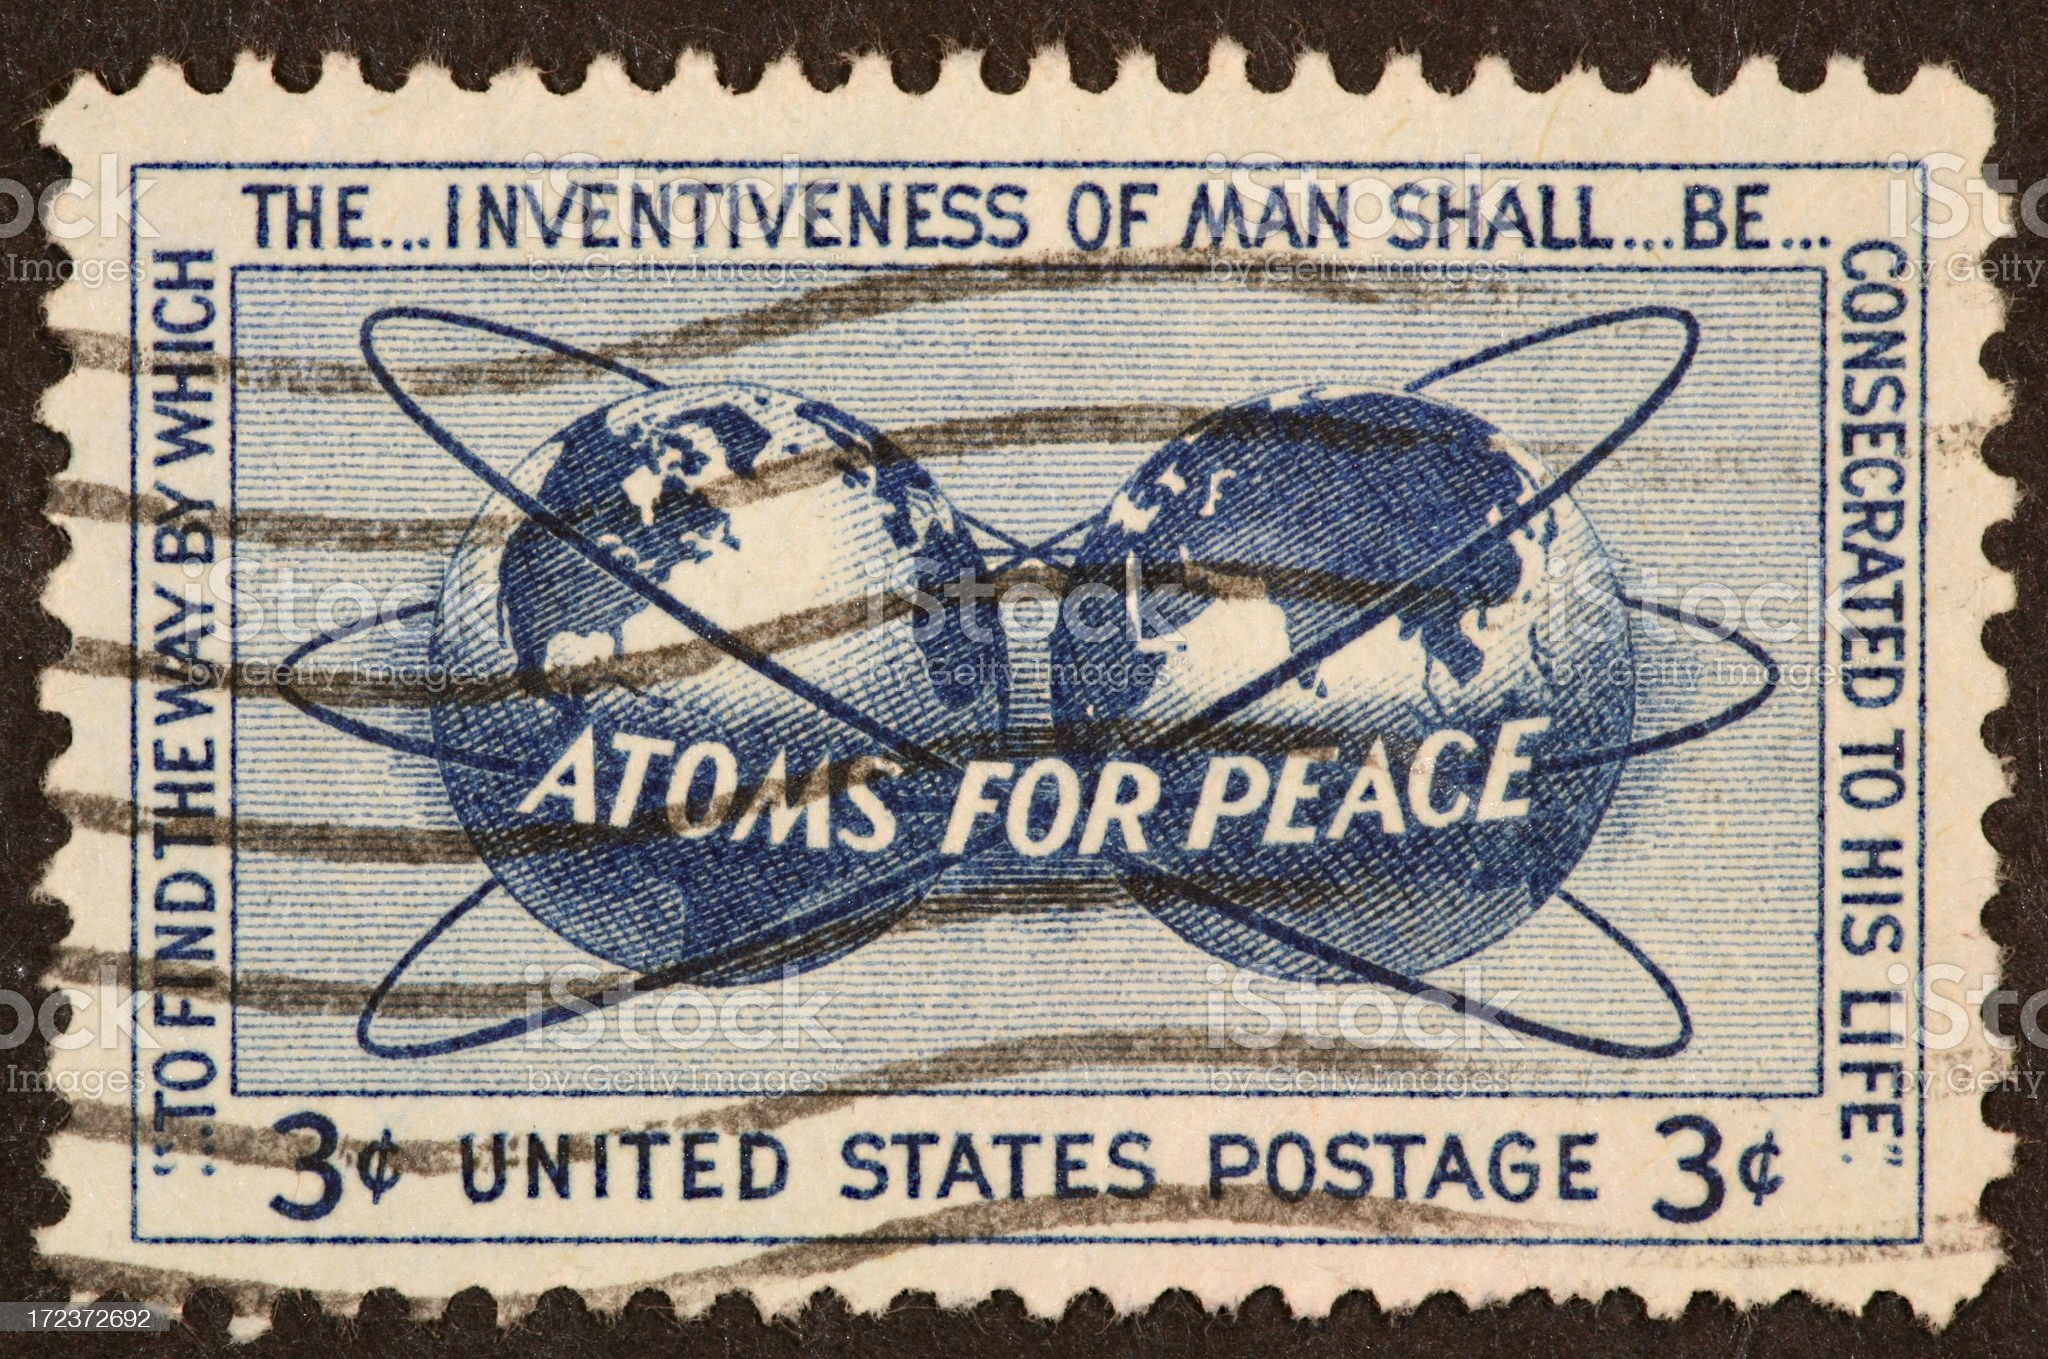 Atomic energy stamp royalty-free stock photo